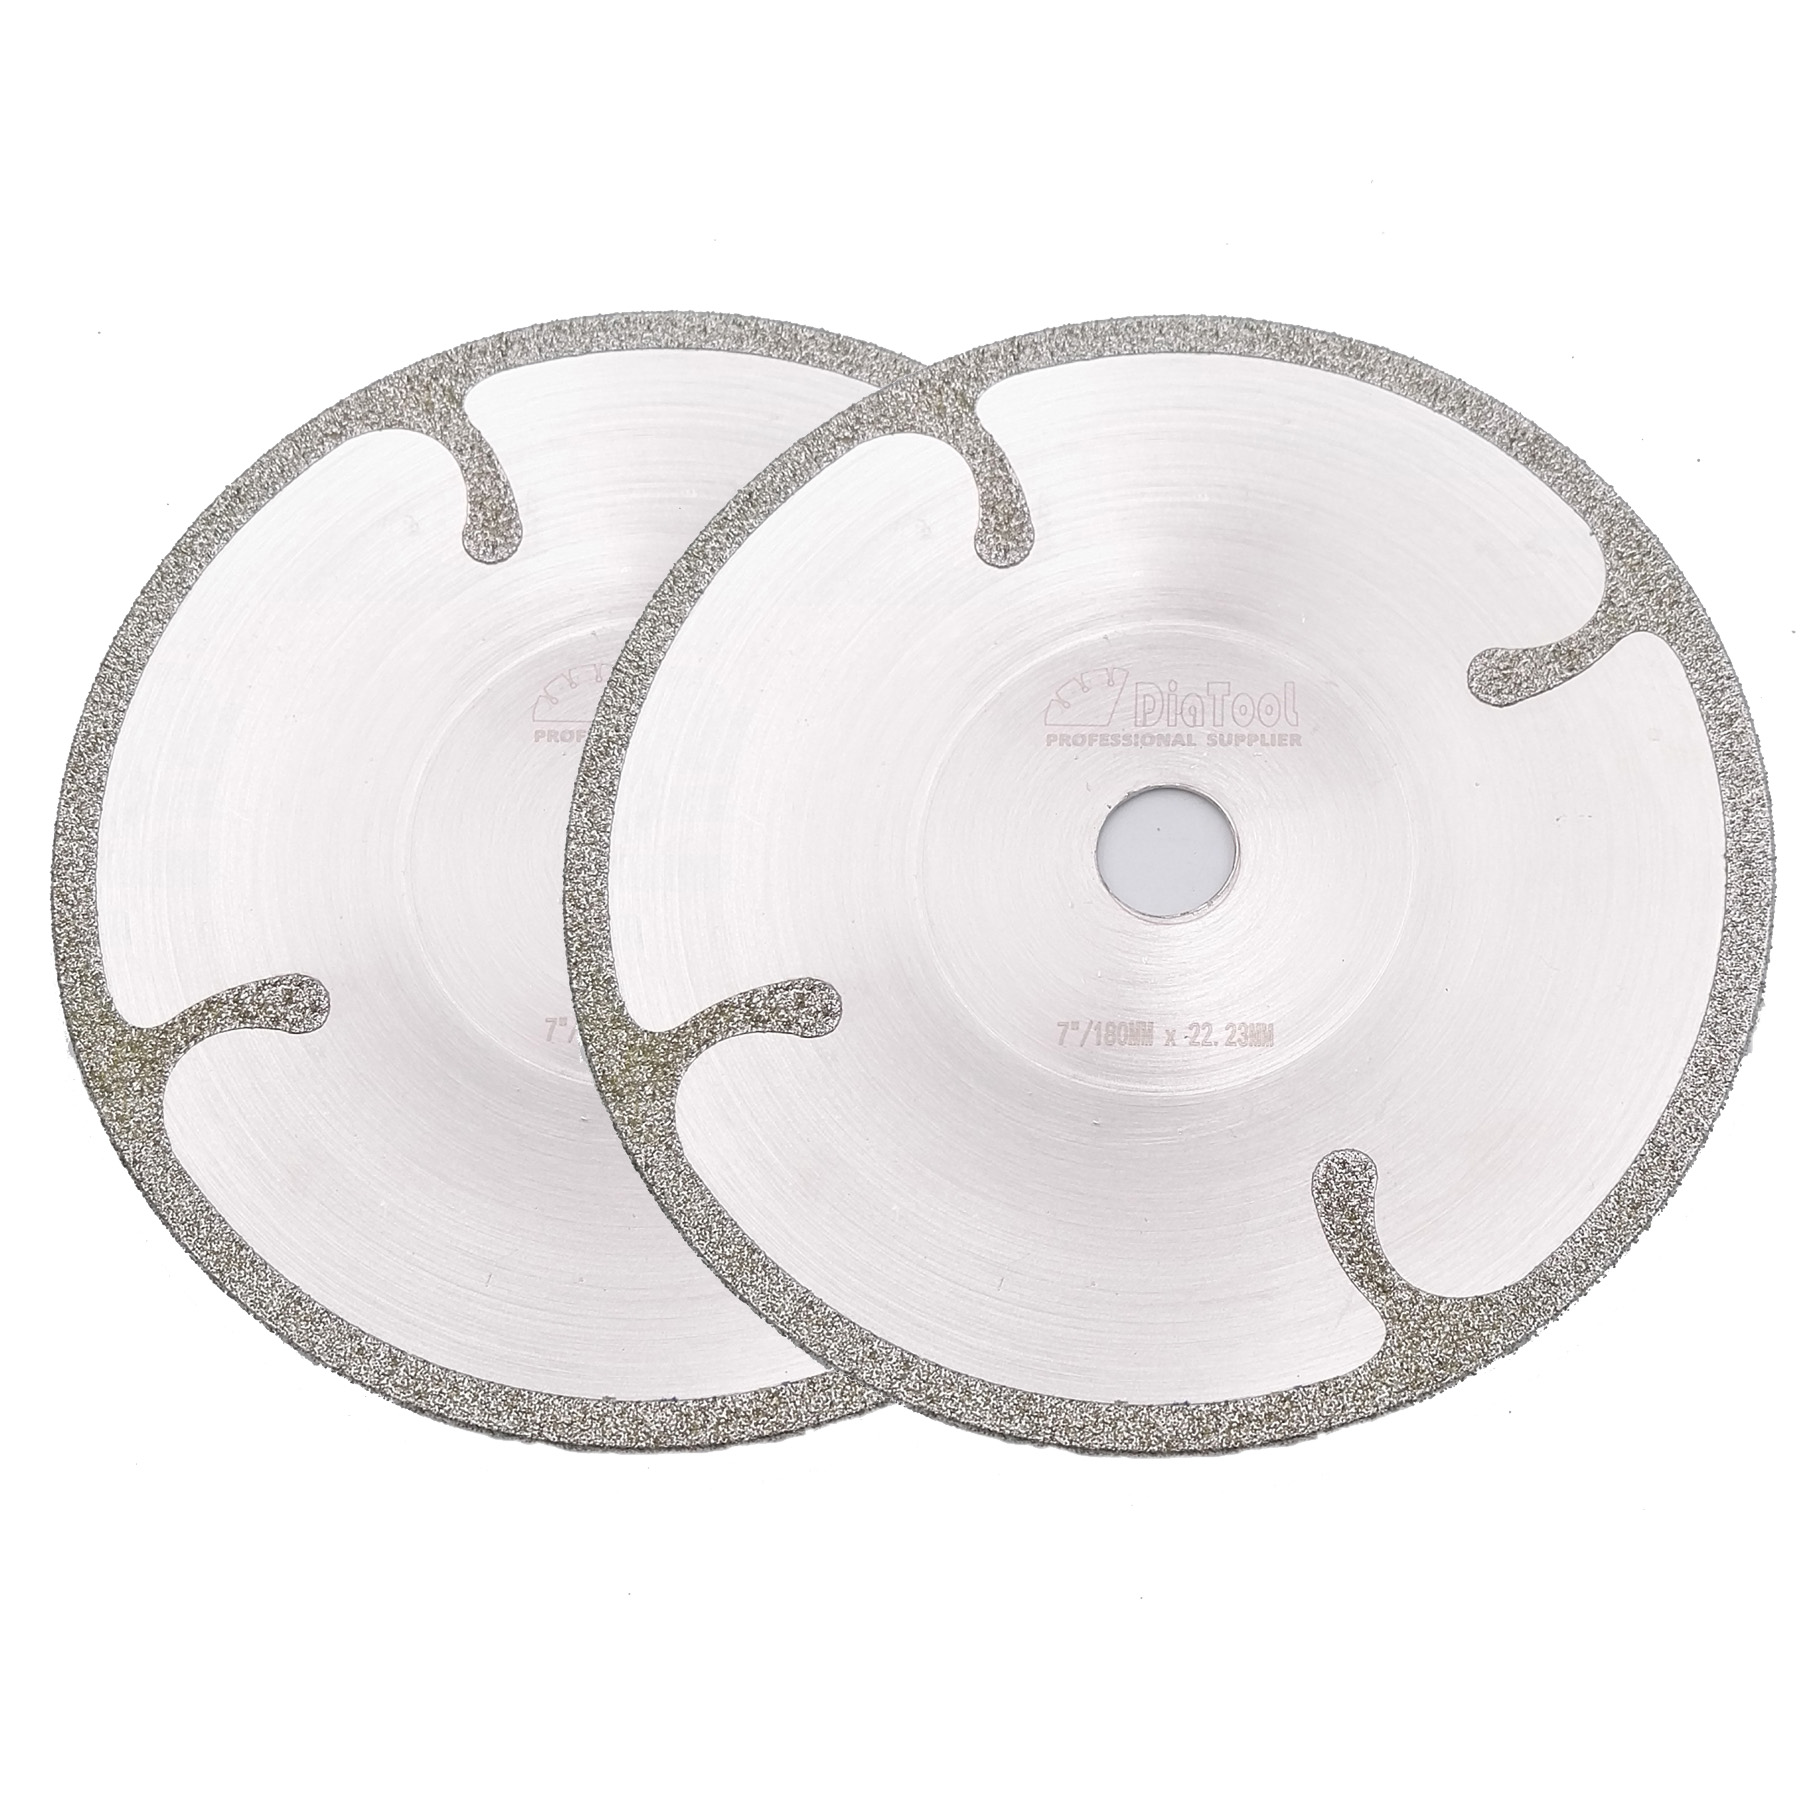 DIATOOL 2pcs 7 Bowl shaped Electroplated diamond cutting disc with Protection 180MM coated diamond saw blade for granite marble